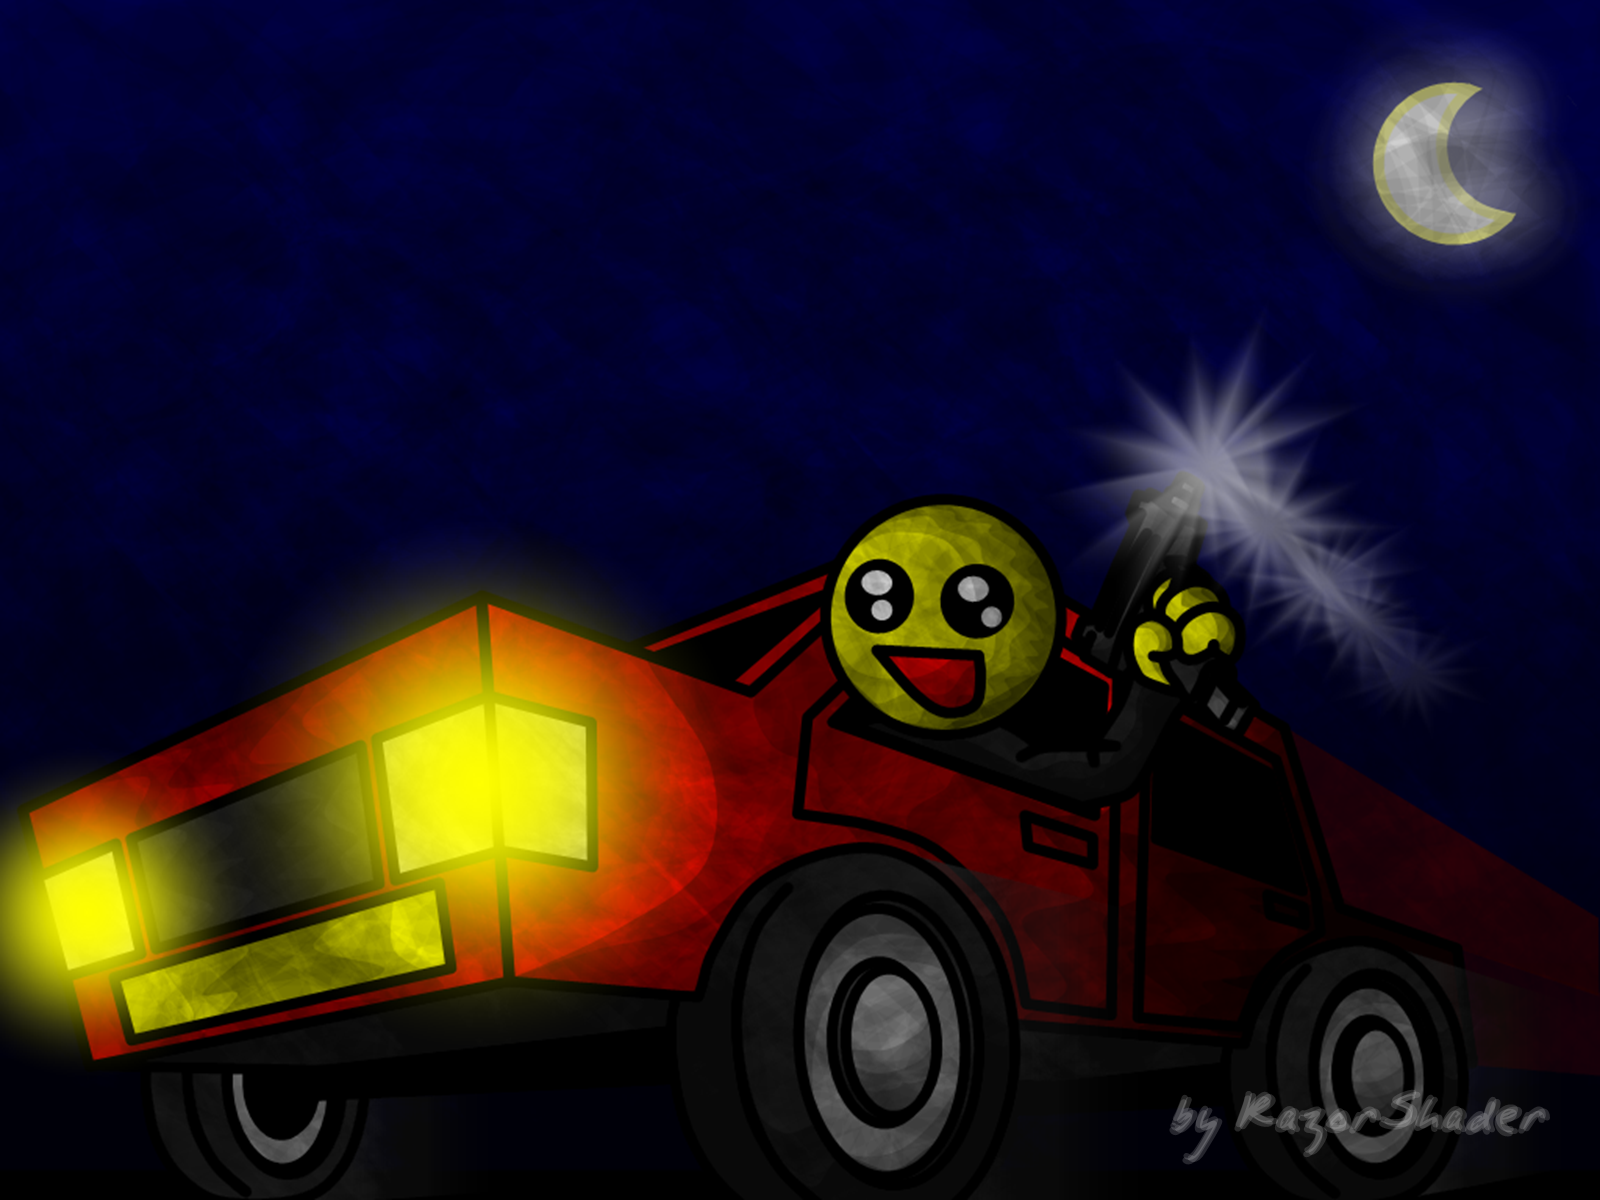 Nocturnal drive-by